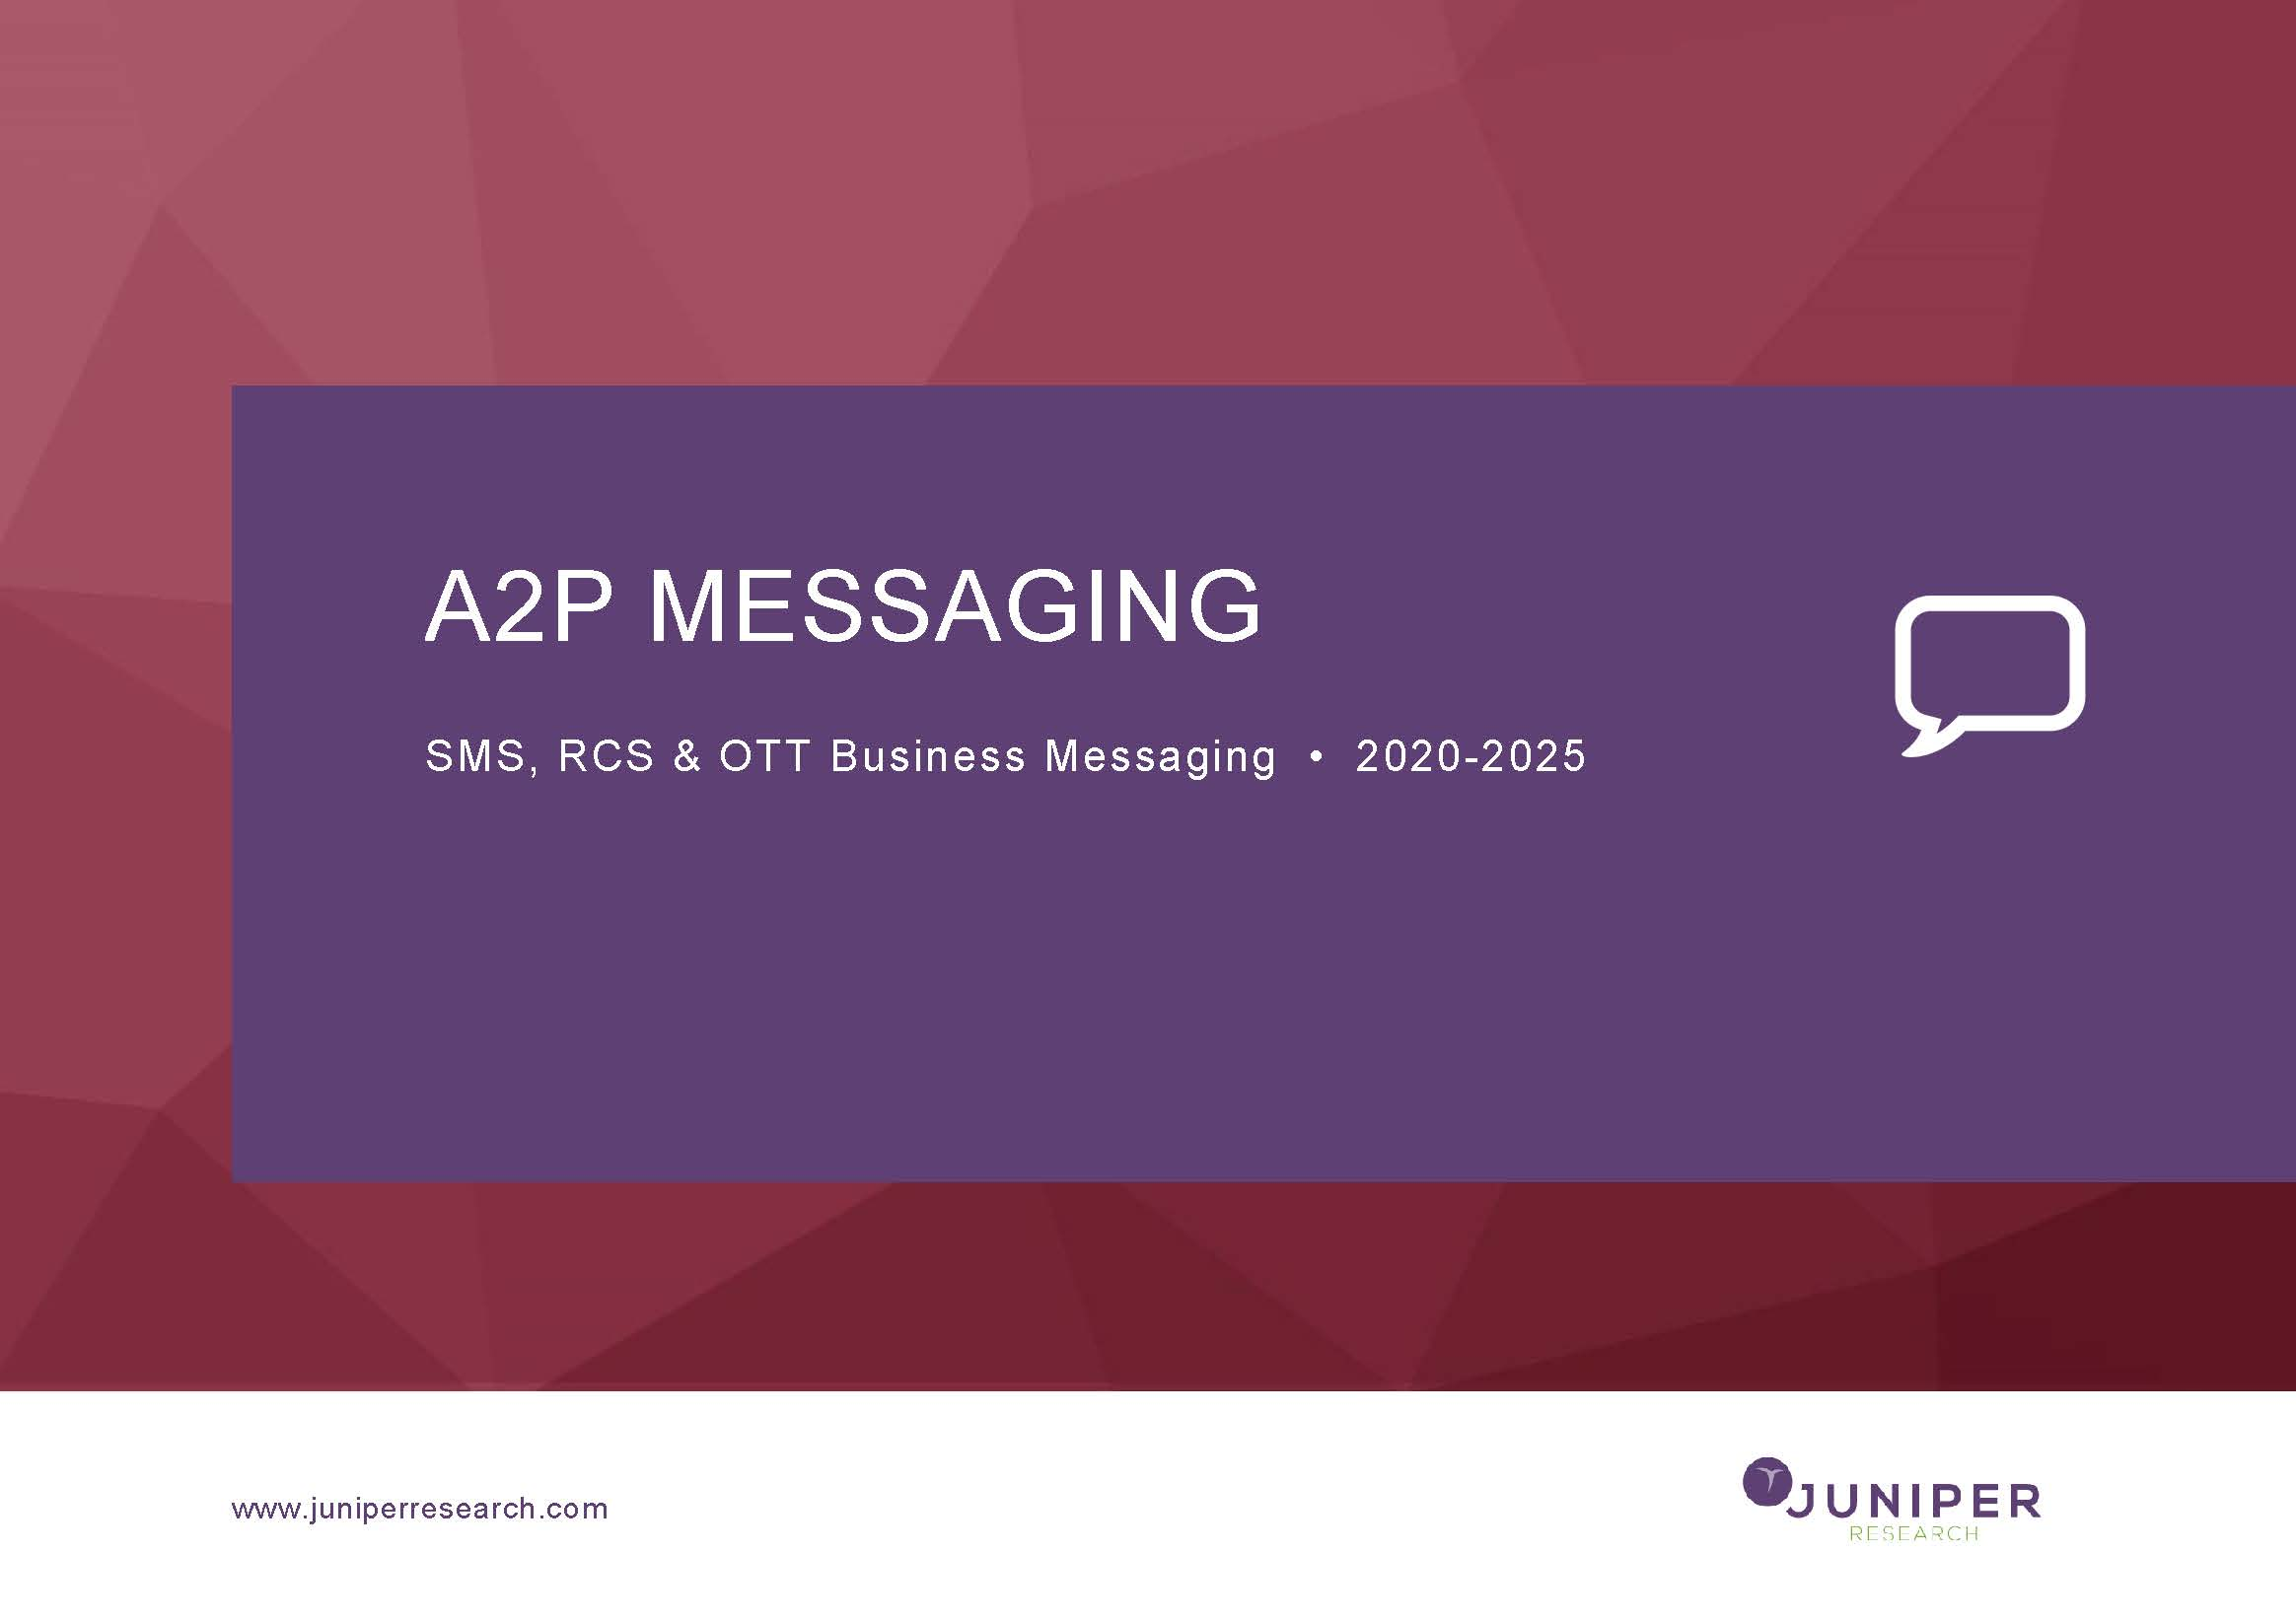 A2P Messaging: SMS, RCS & OTT Business Messaging 2020-2025